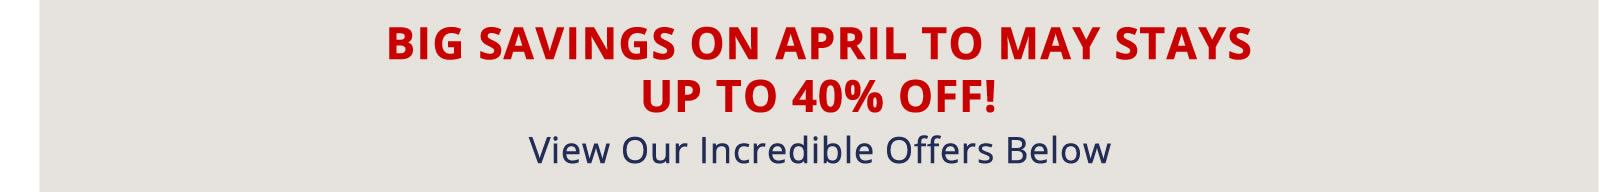 Book Now for Big Savings on April to May Stays. Up to 40% off!